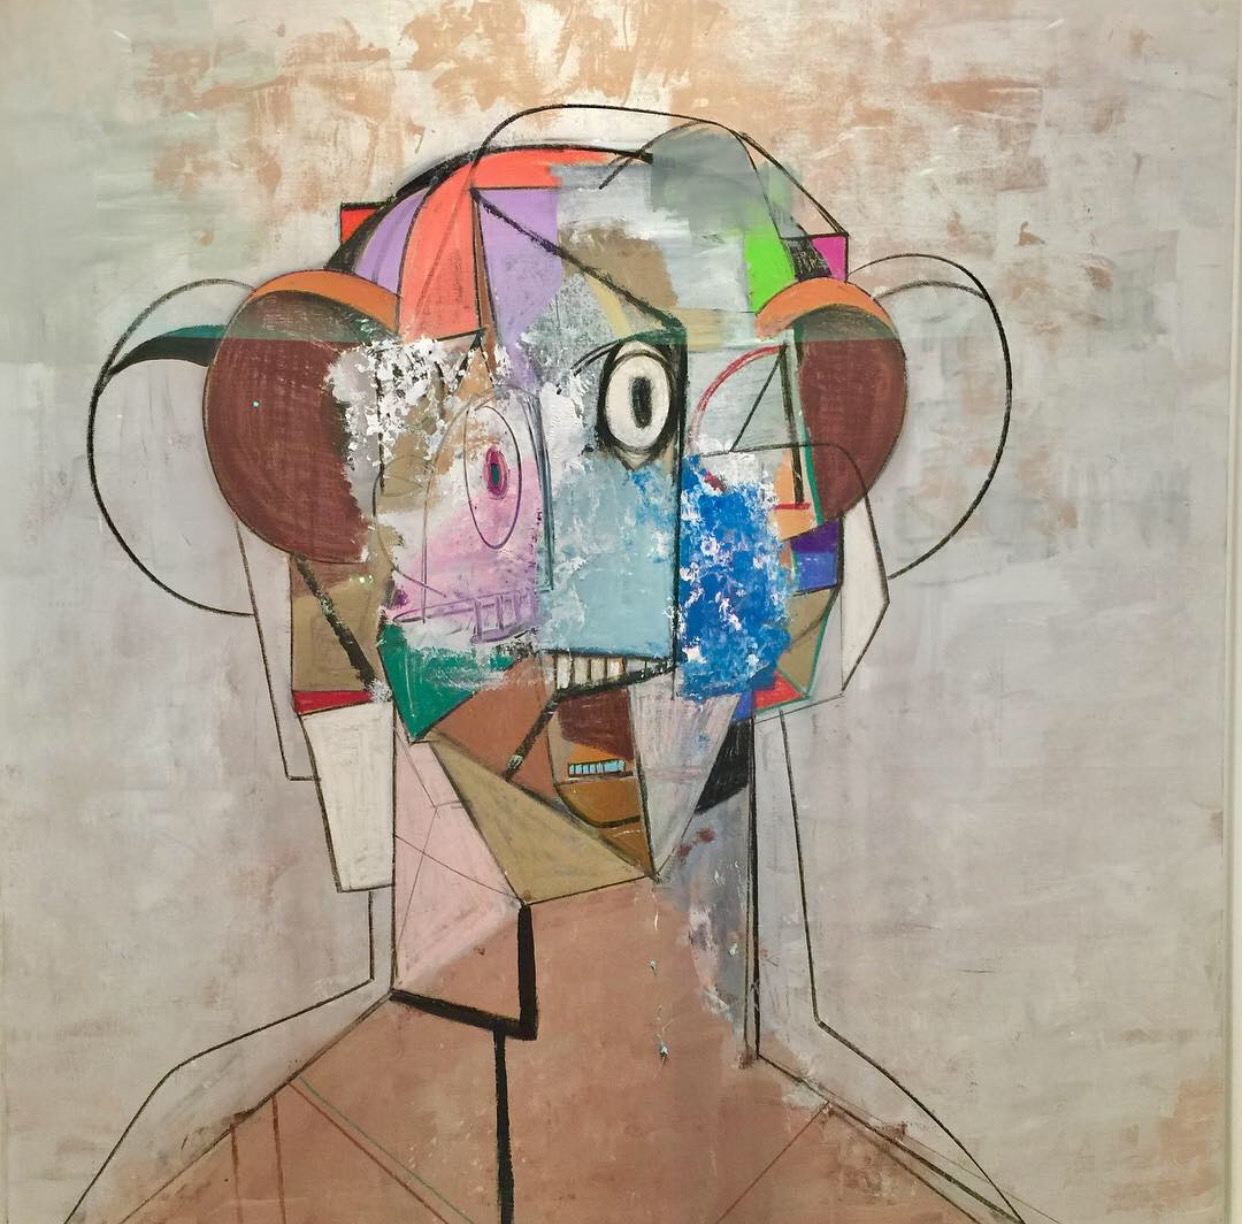 George Condo, The Pilot, 2012, Exhibited by Berggruen Gallery